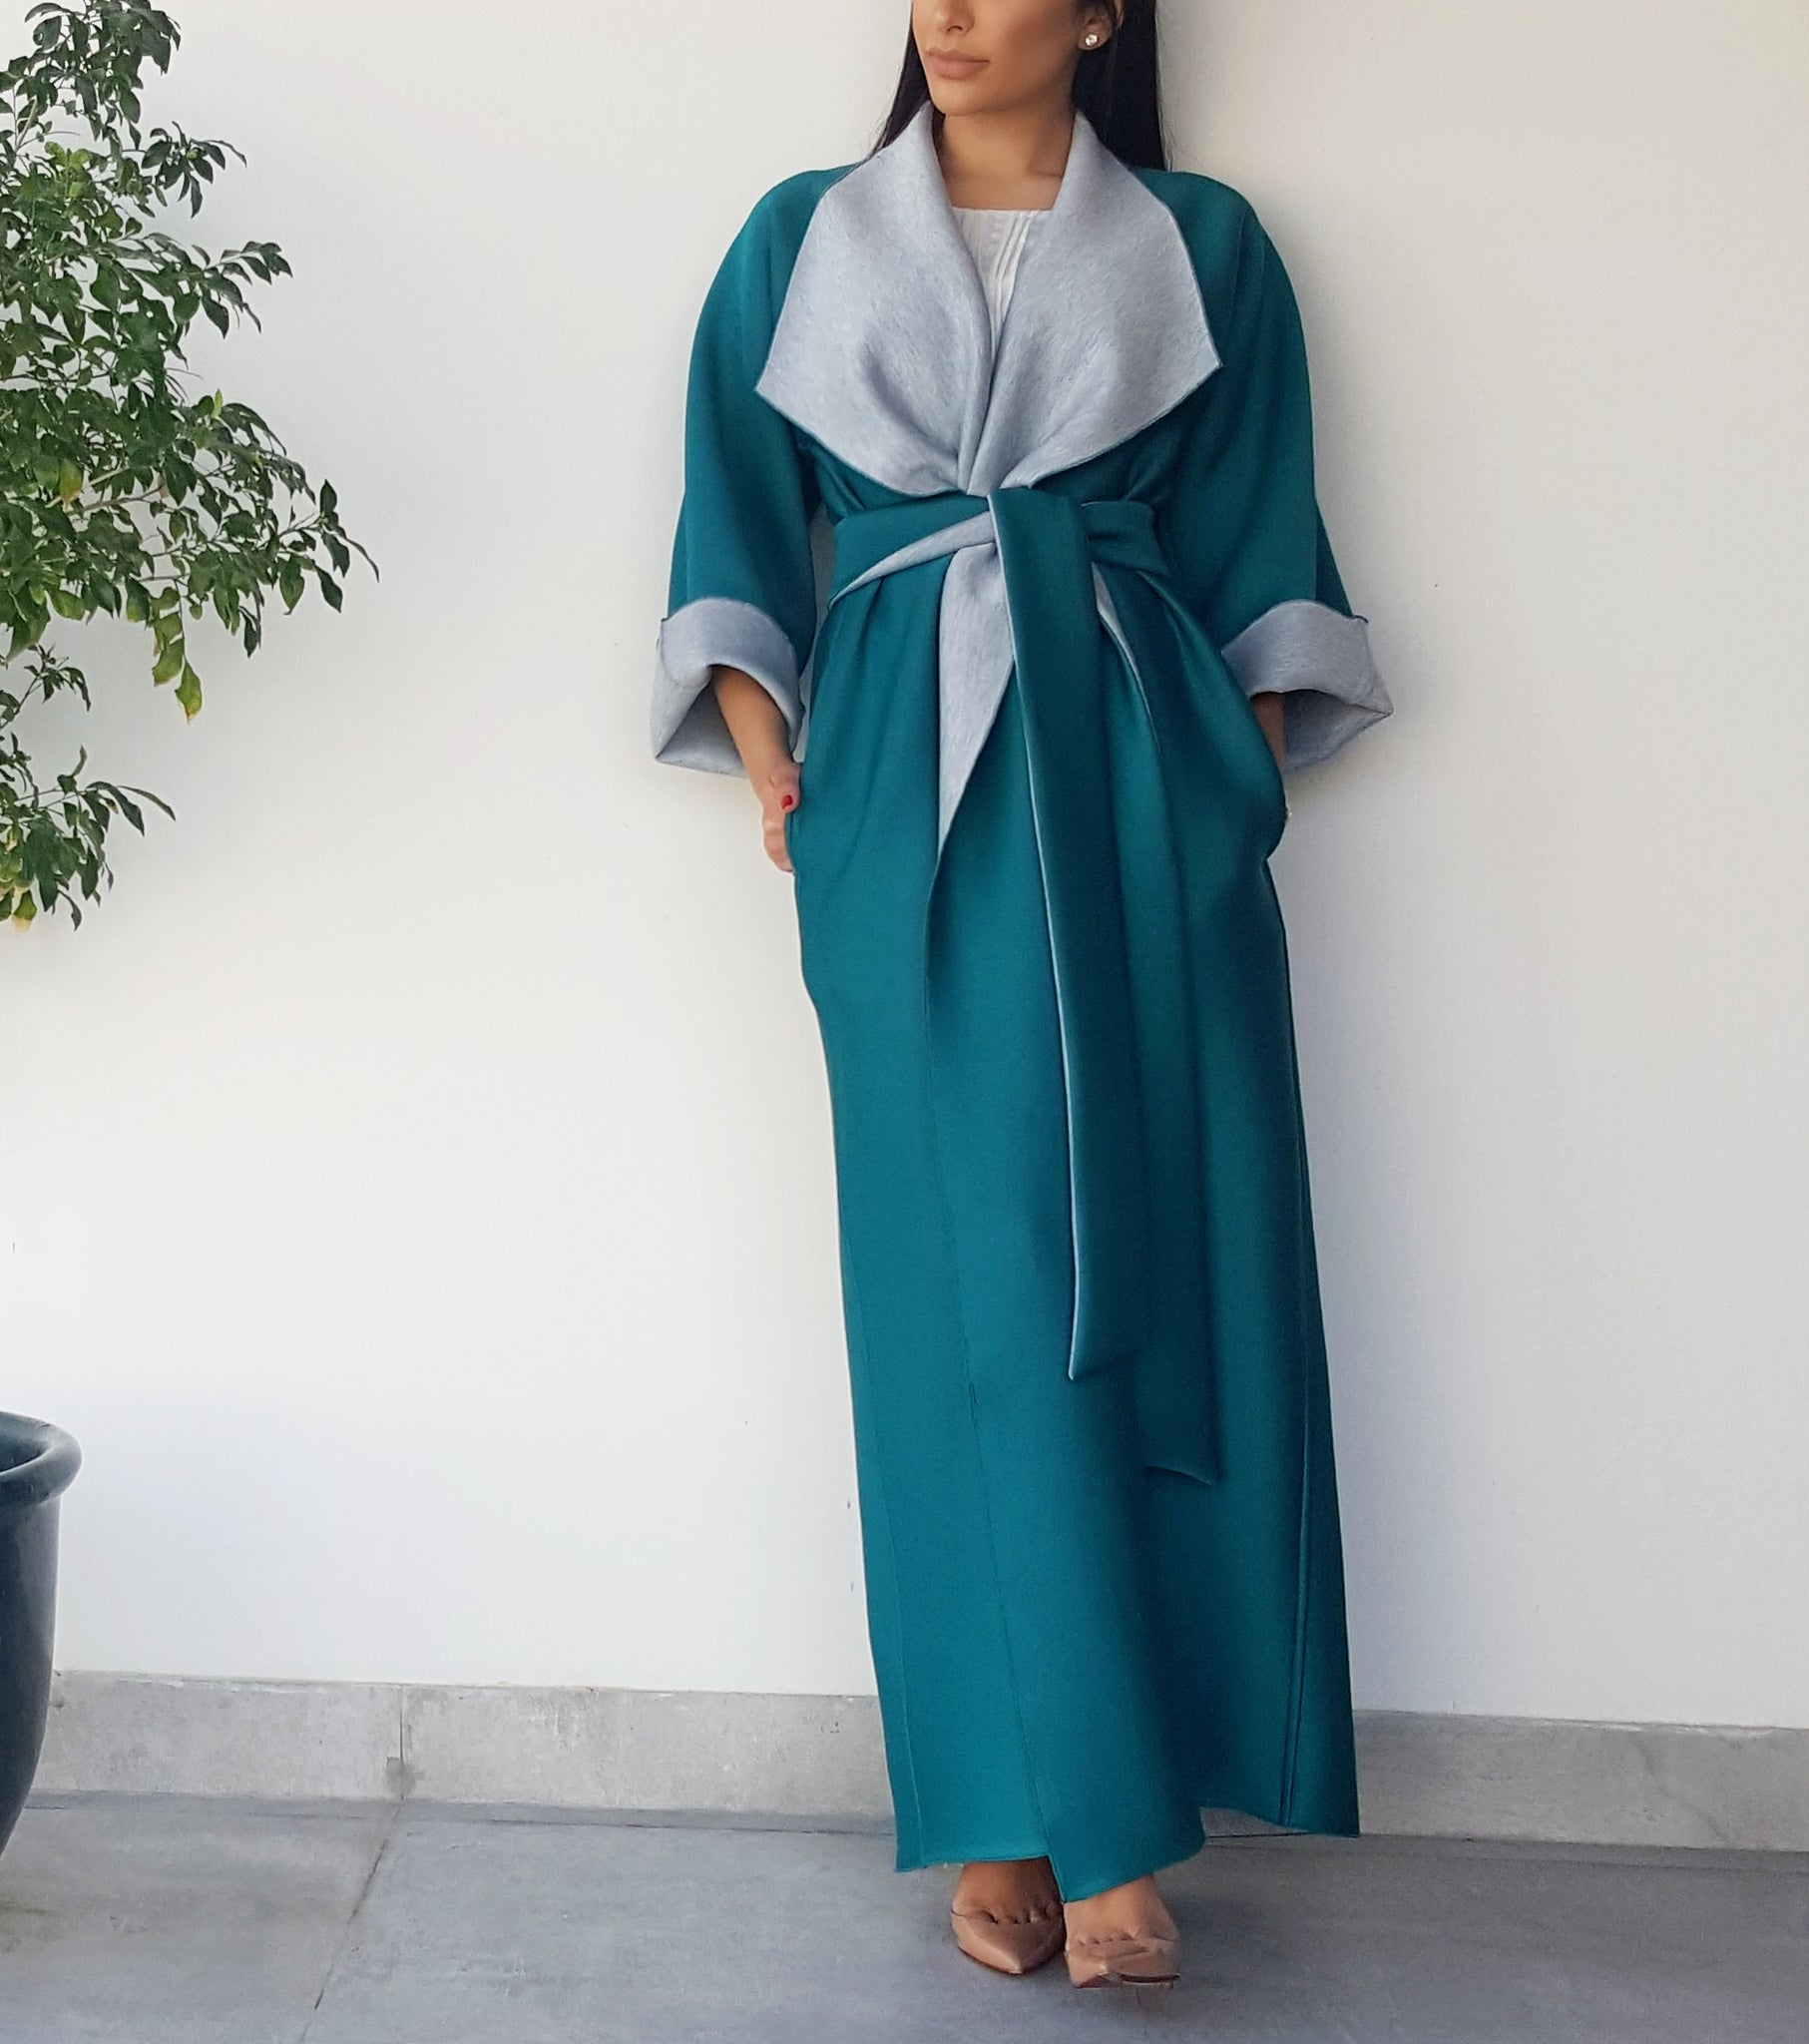 AW17 2 TONE TEAL & GREY OVERLAP SCROLL COLLAR ABAYA IN NEOPRENE